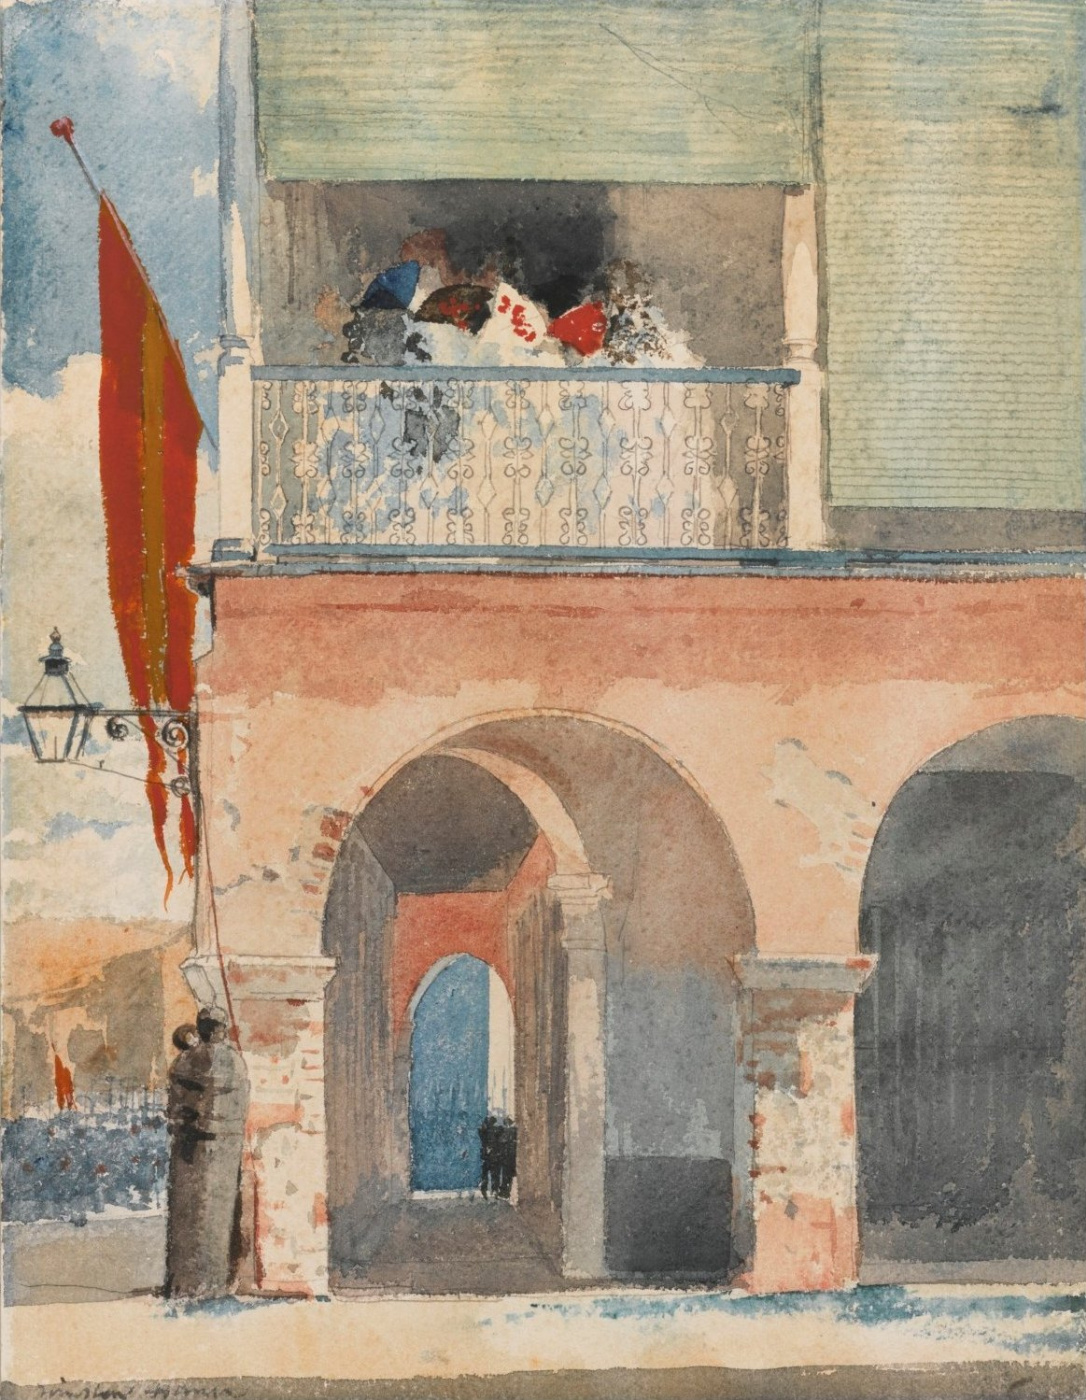 Winslow Homer. The customs house. Santiago de Cuba